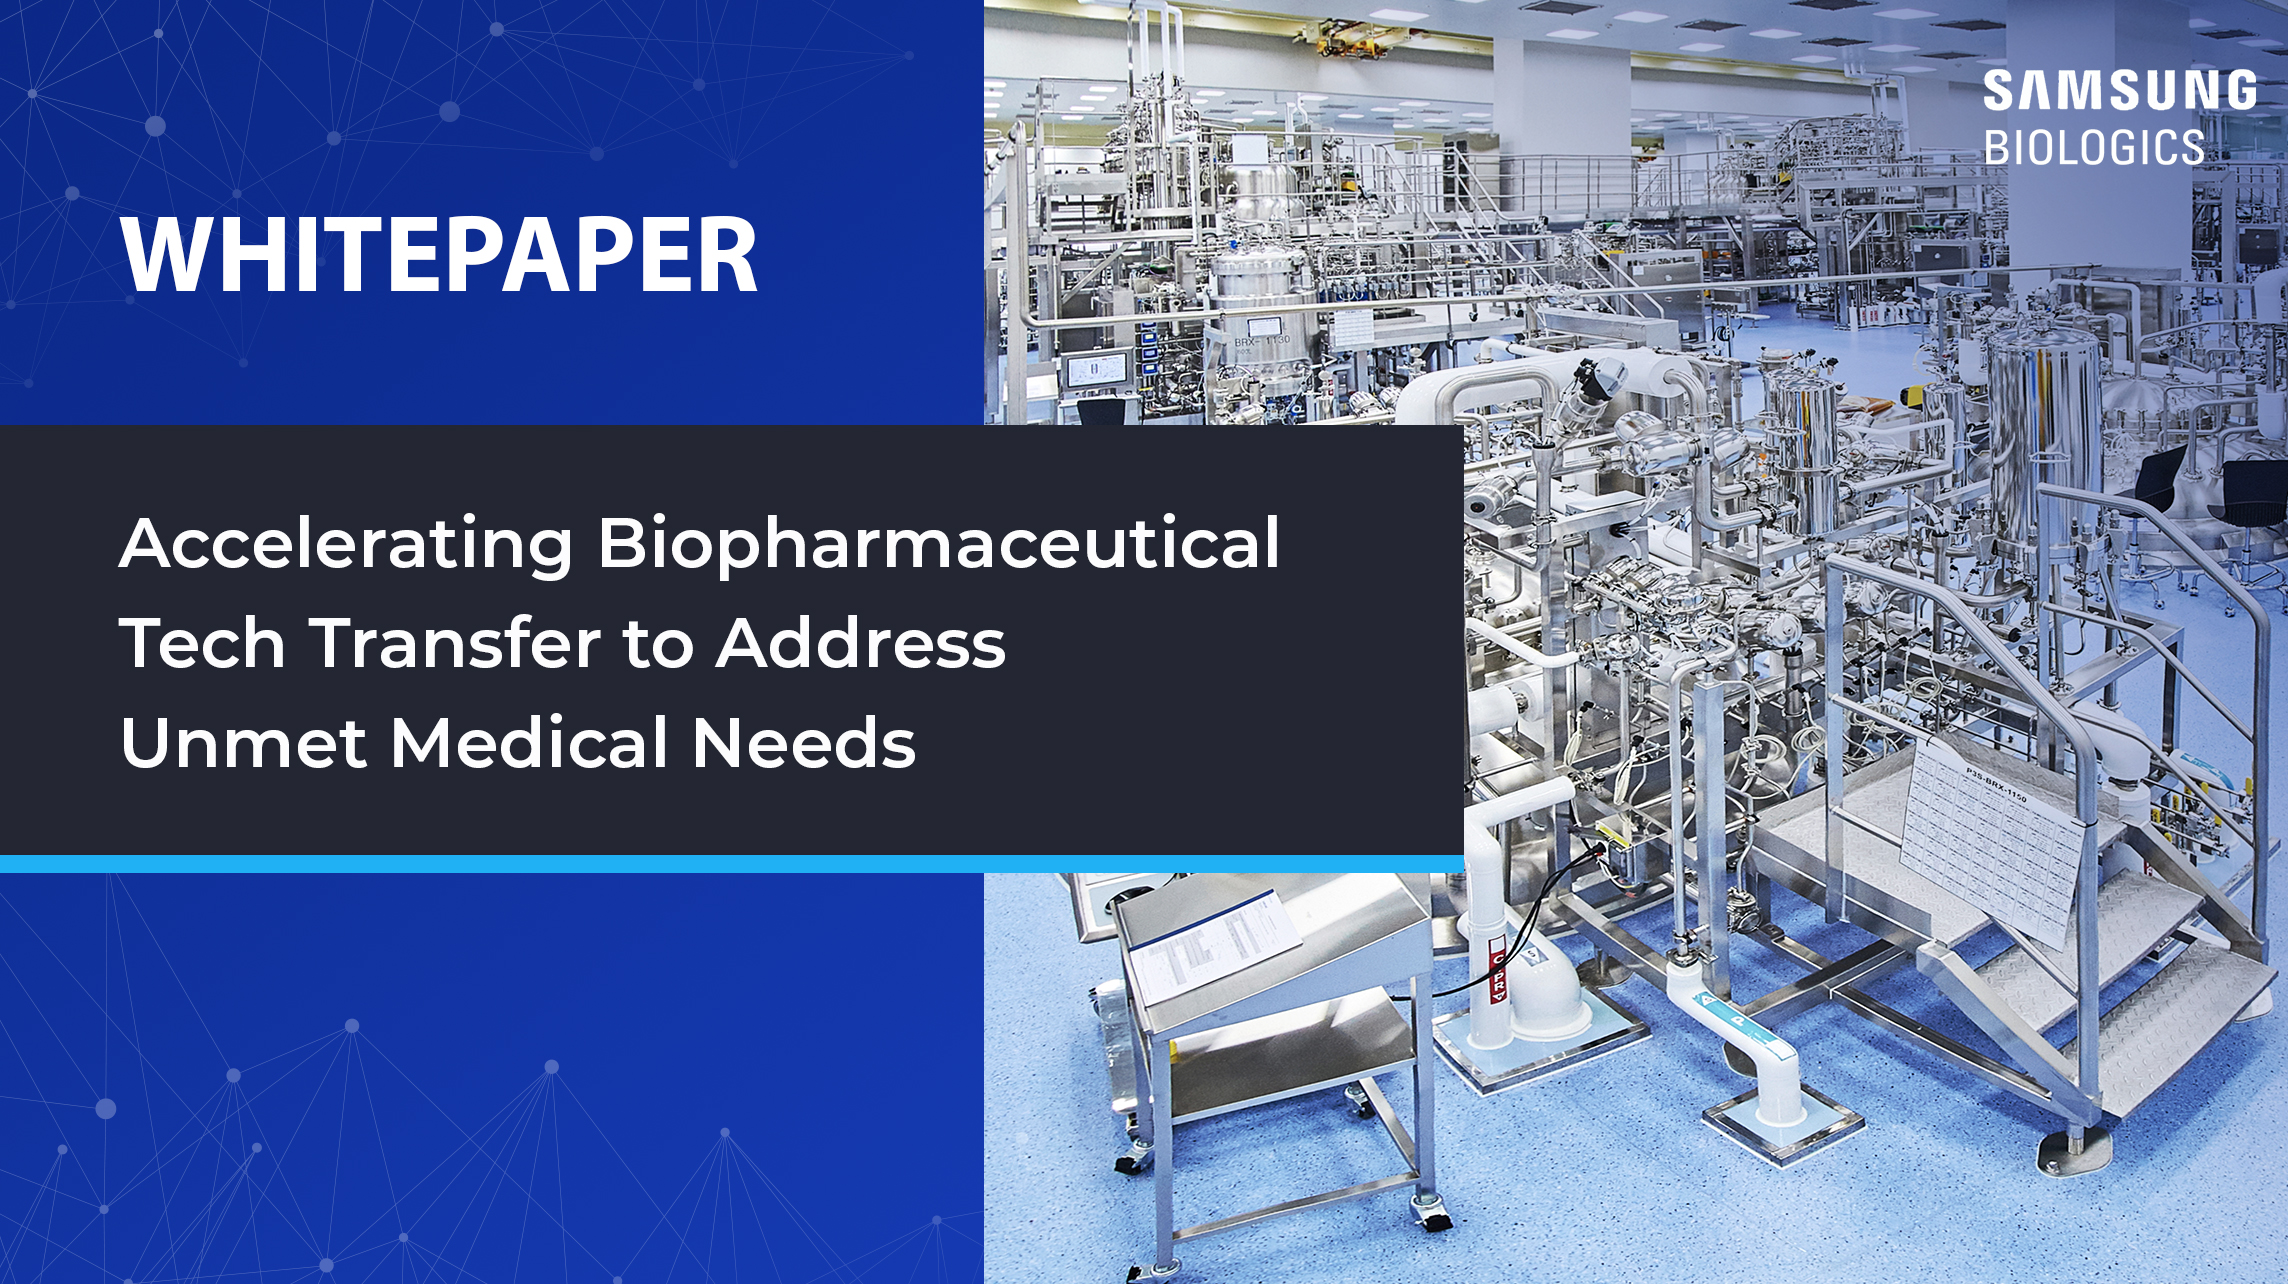 Accelerating biopharmaceutical tech transfer to address unmet medical needs